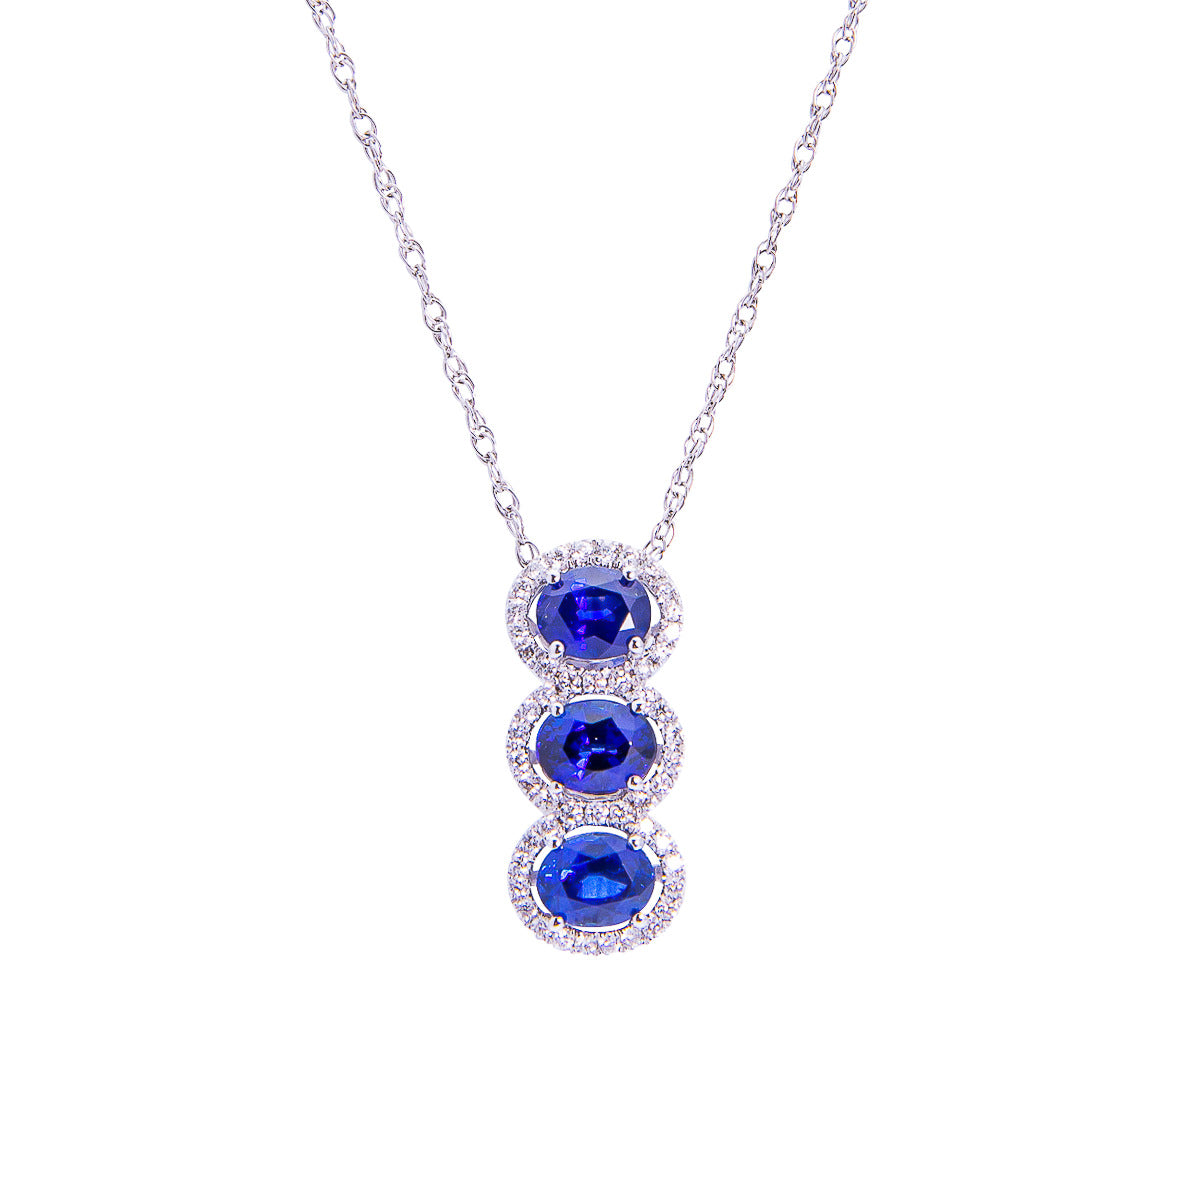 Sabel Collection 14K White Gold Sapphire and Diamond Triple Drop Pendant